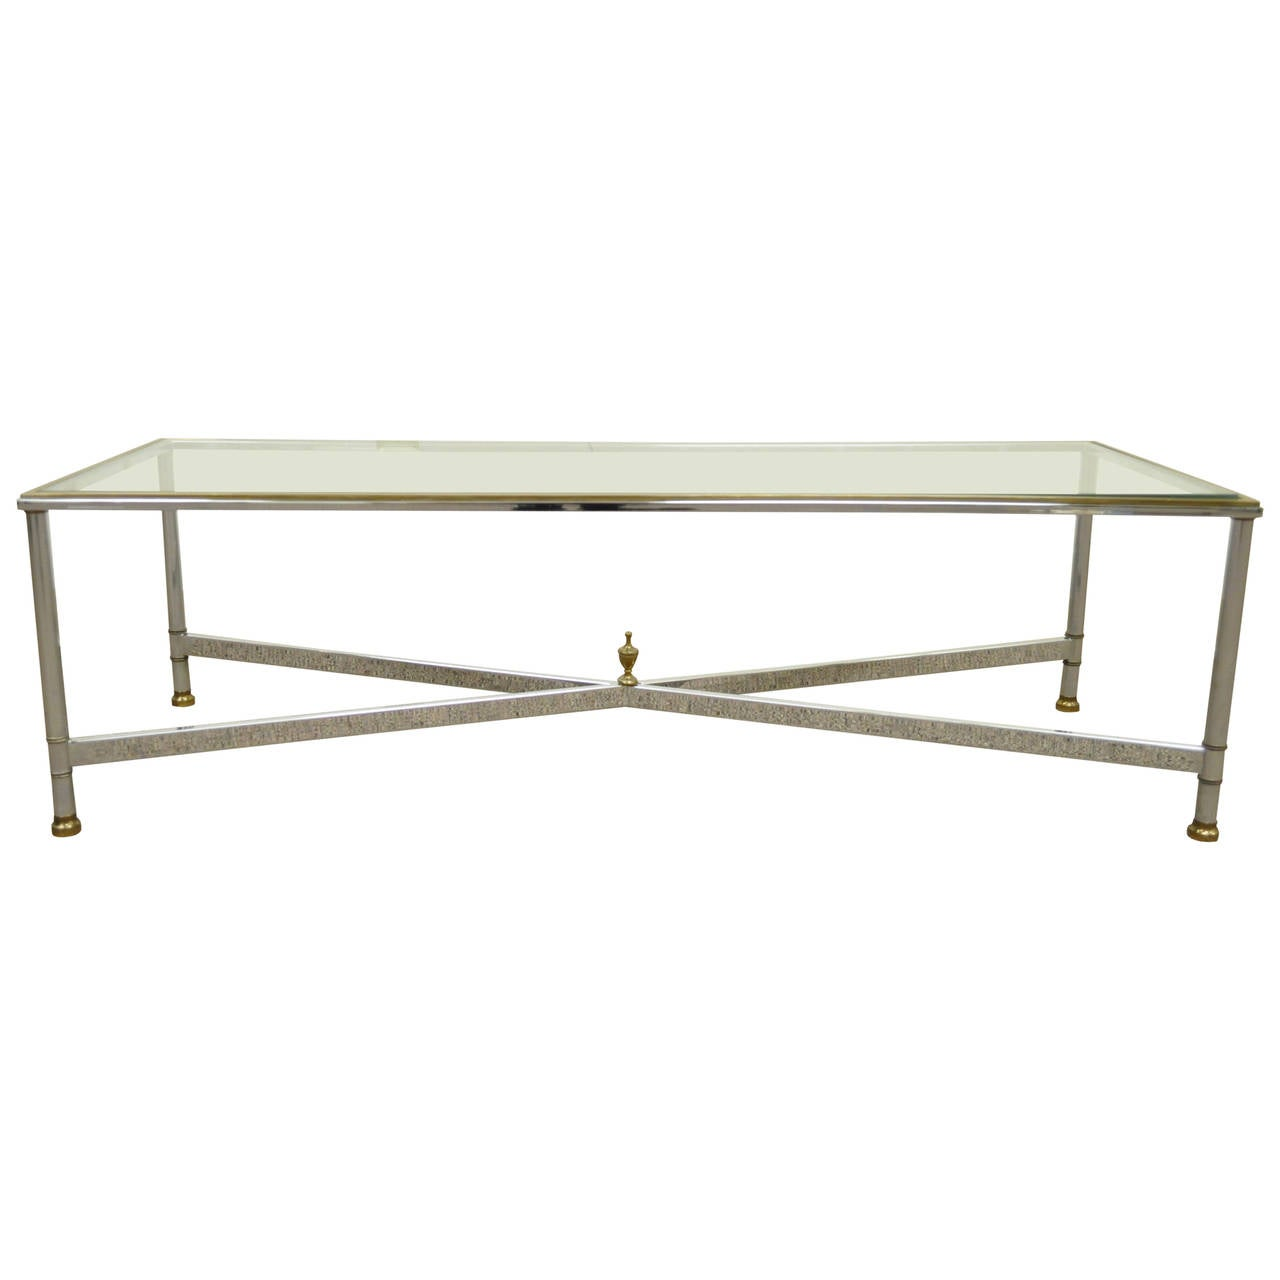 Neoclassical Style Chrome, Brass, & Glass Coffee Table after Maison Jansen